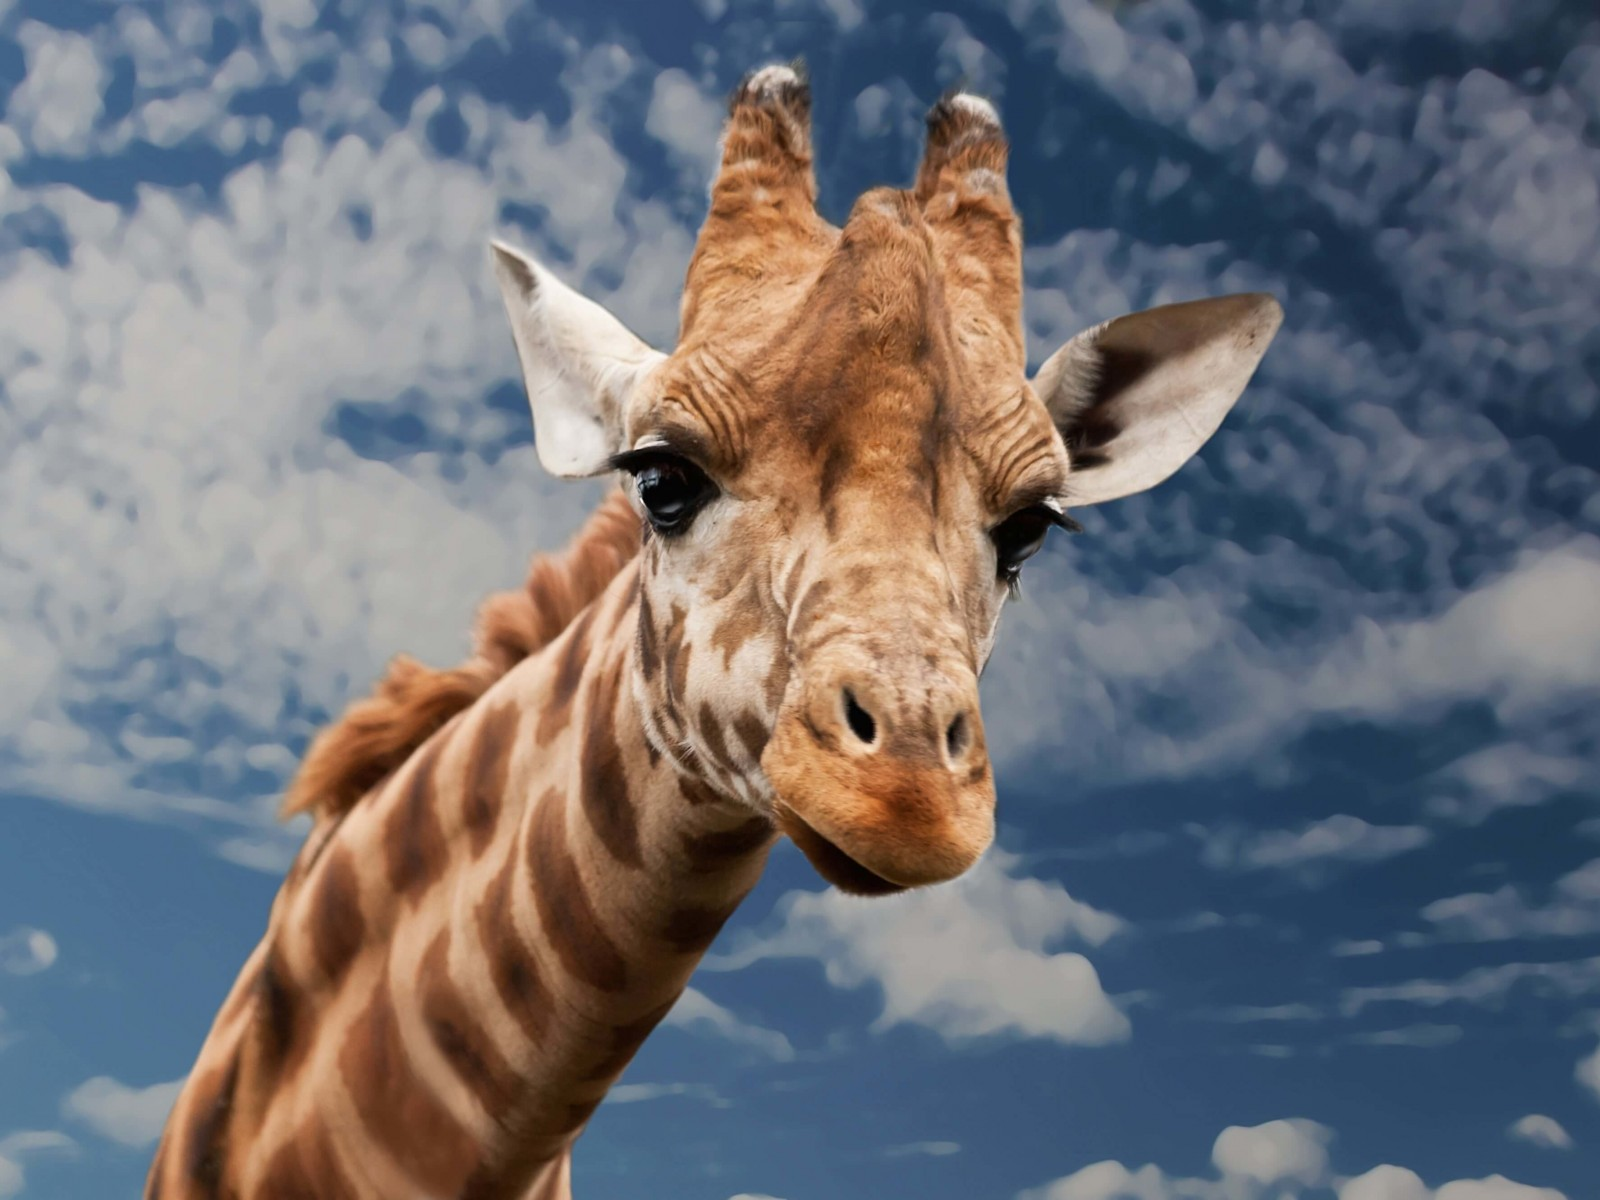 Funny Giraffe Wallpaper for Desktop 1600x1200